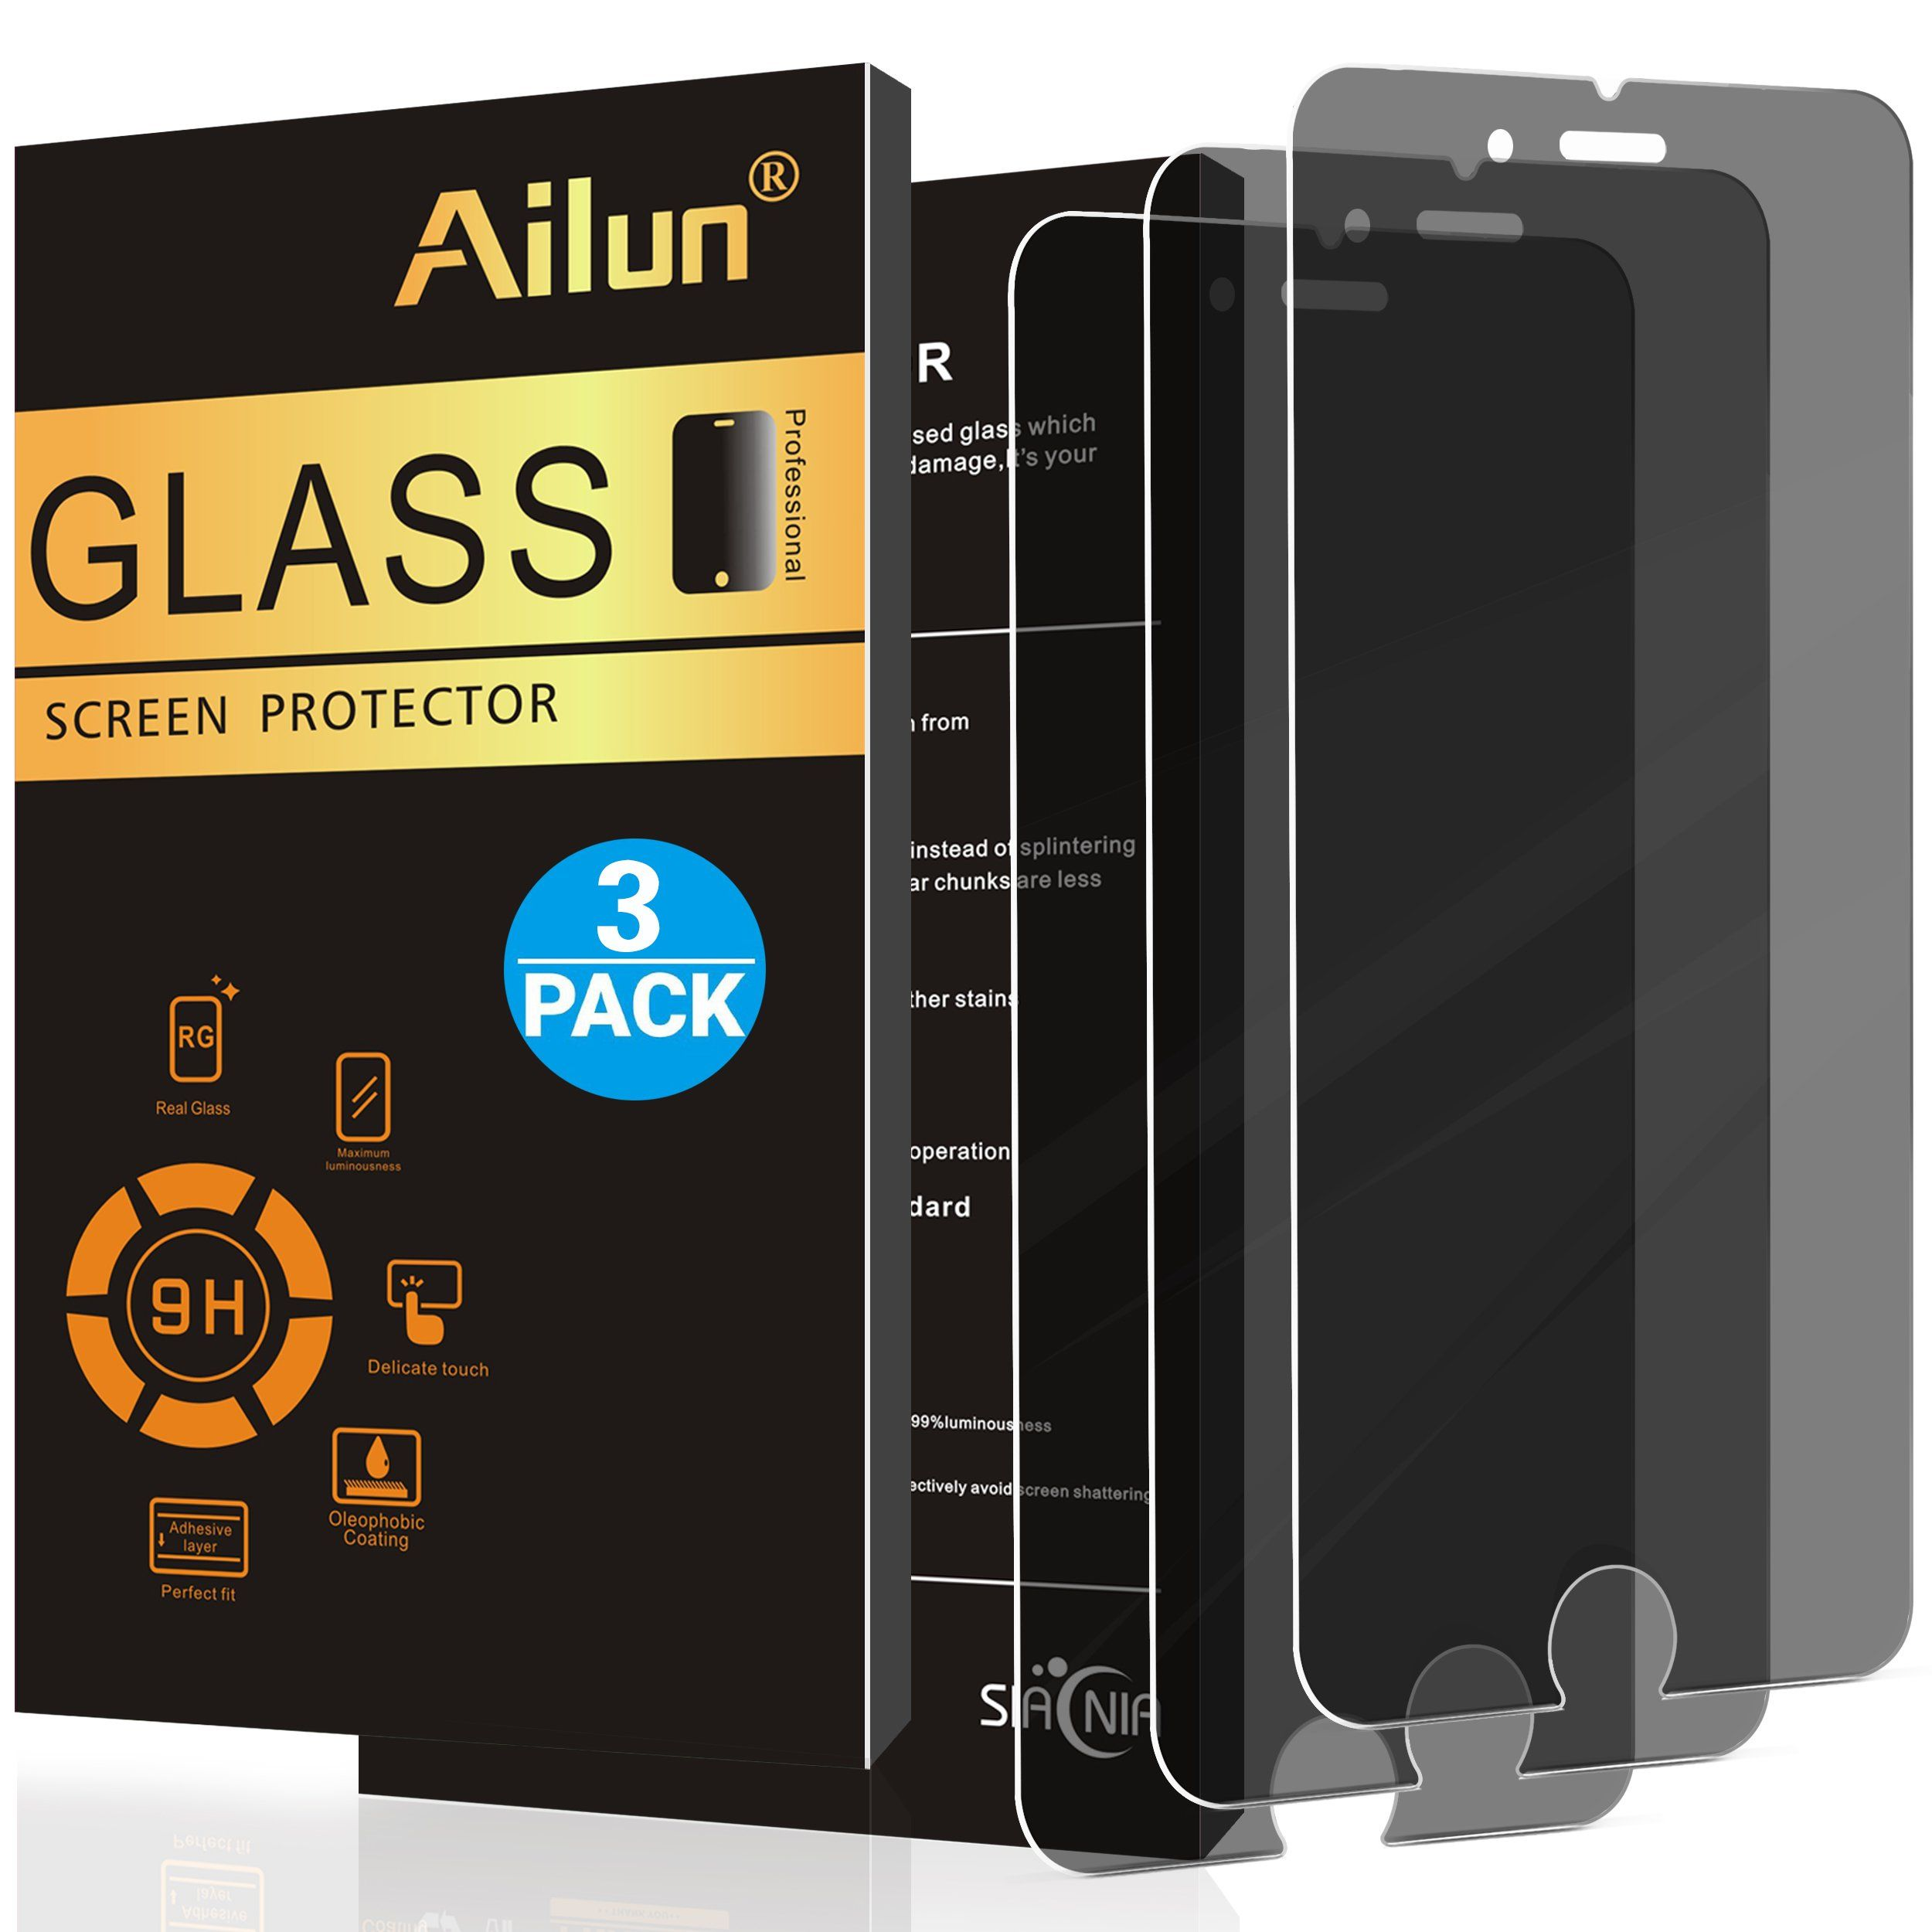 Ailun privacy screen protector for iphone 8 plus 7 plus3